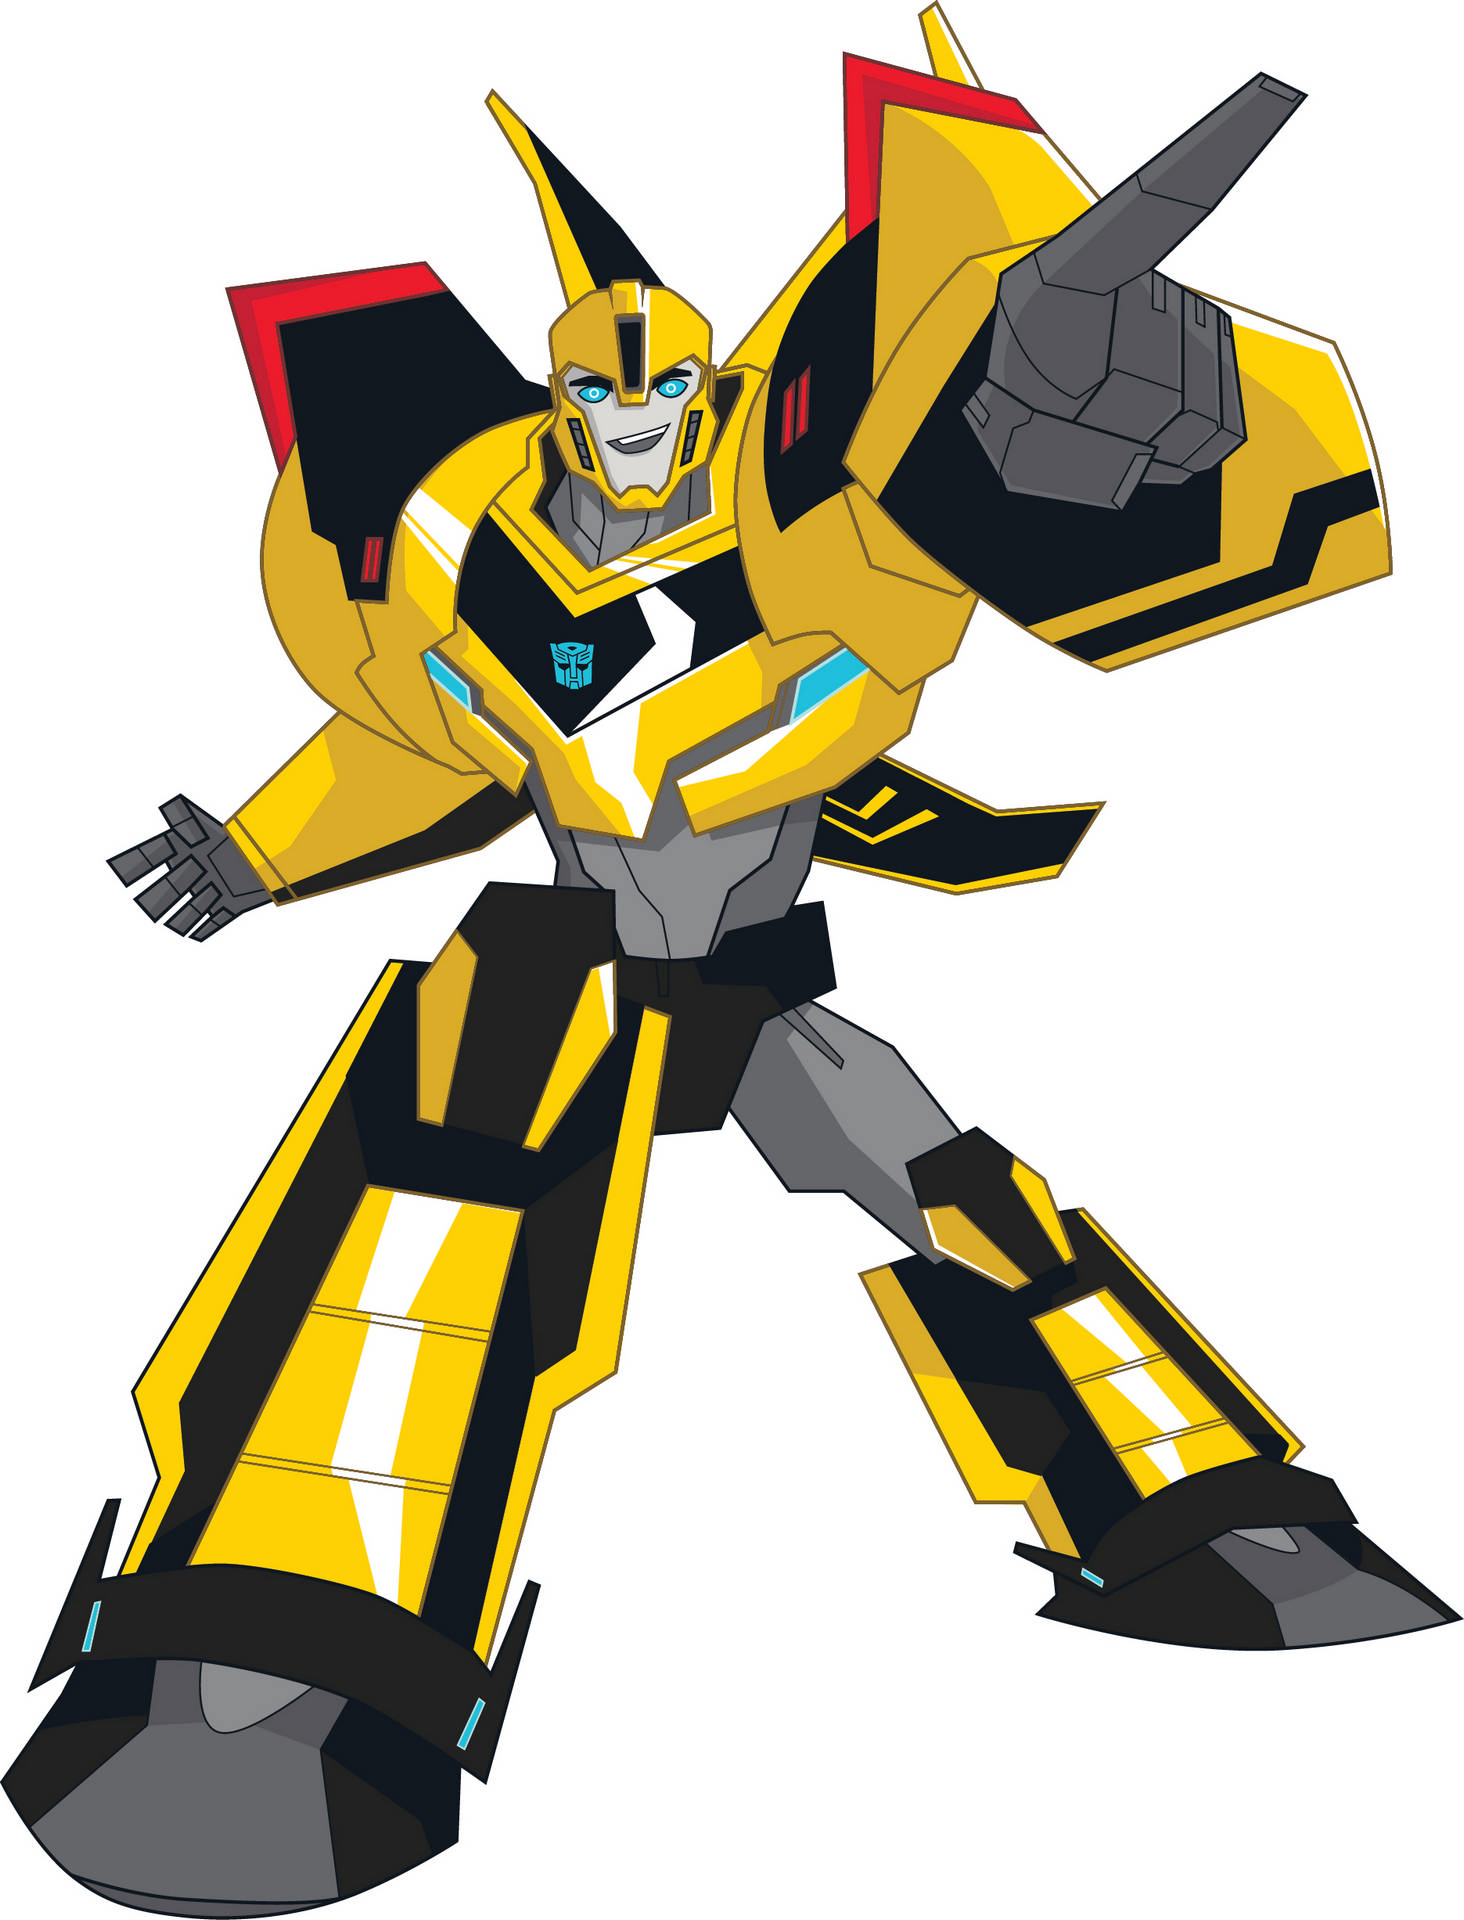 New transformers cartoon revealed first look at bumblebee transformers news tfw2005 - Images of bumblebee from transformers ...